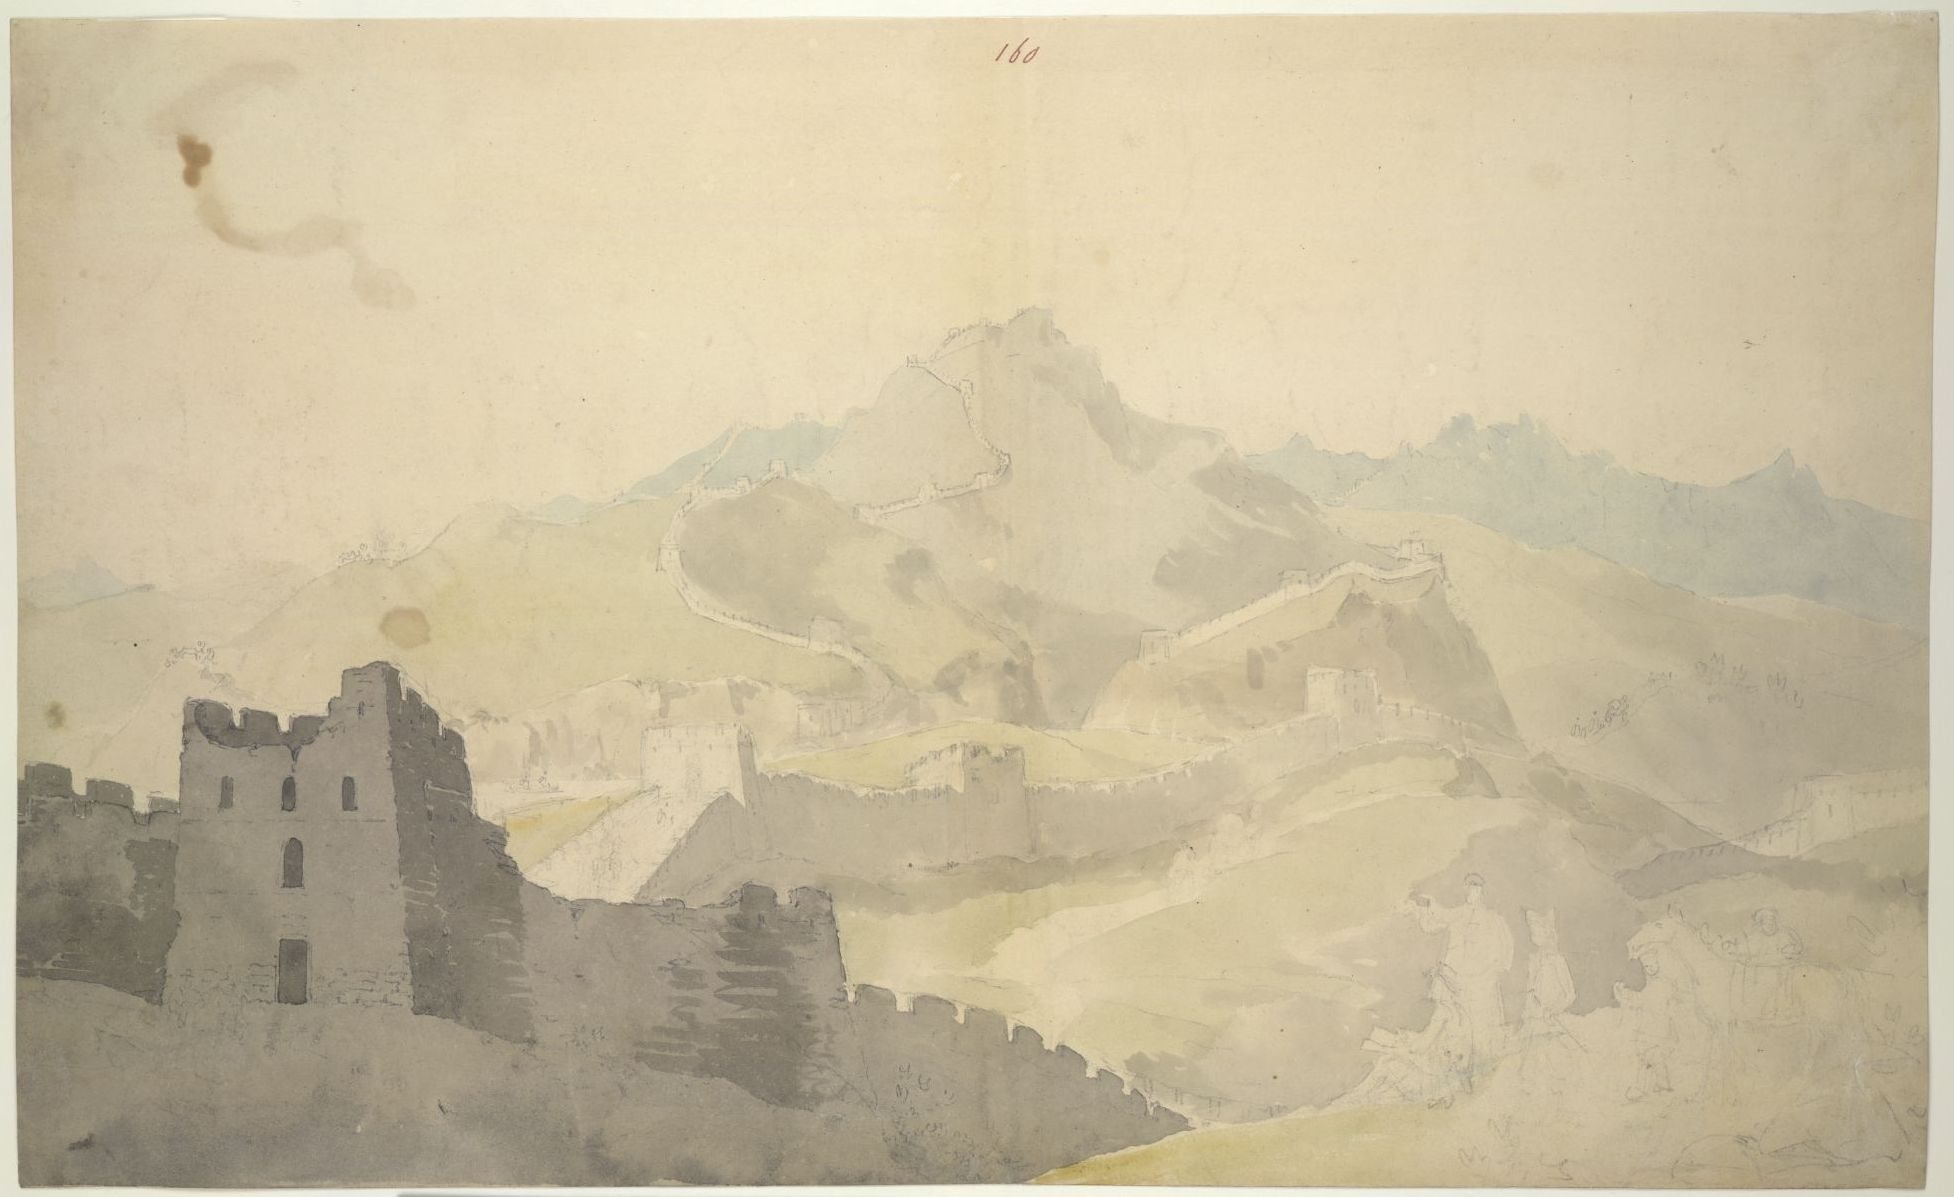 Watercolour of the Great Wall of China by William Alexander